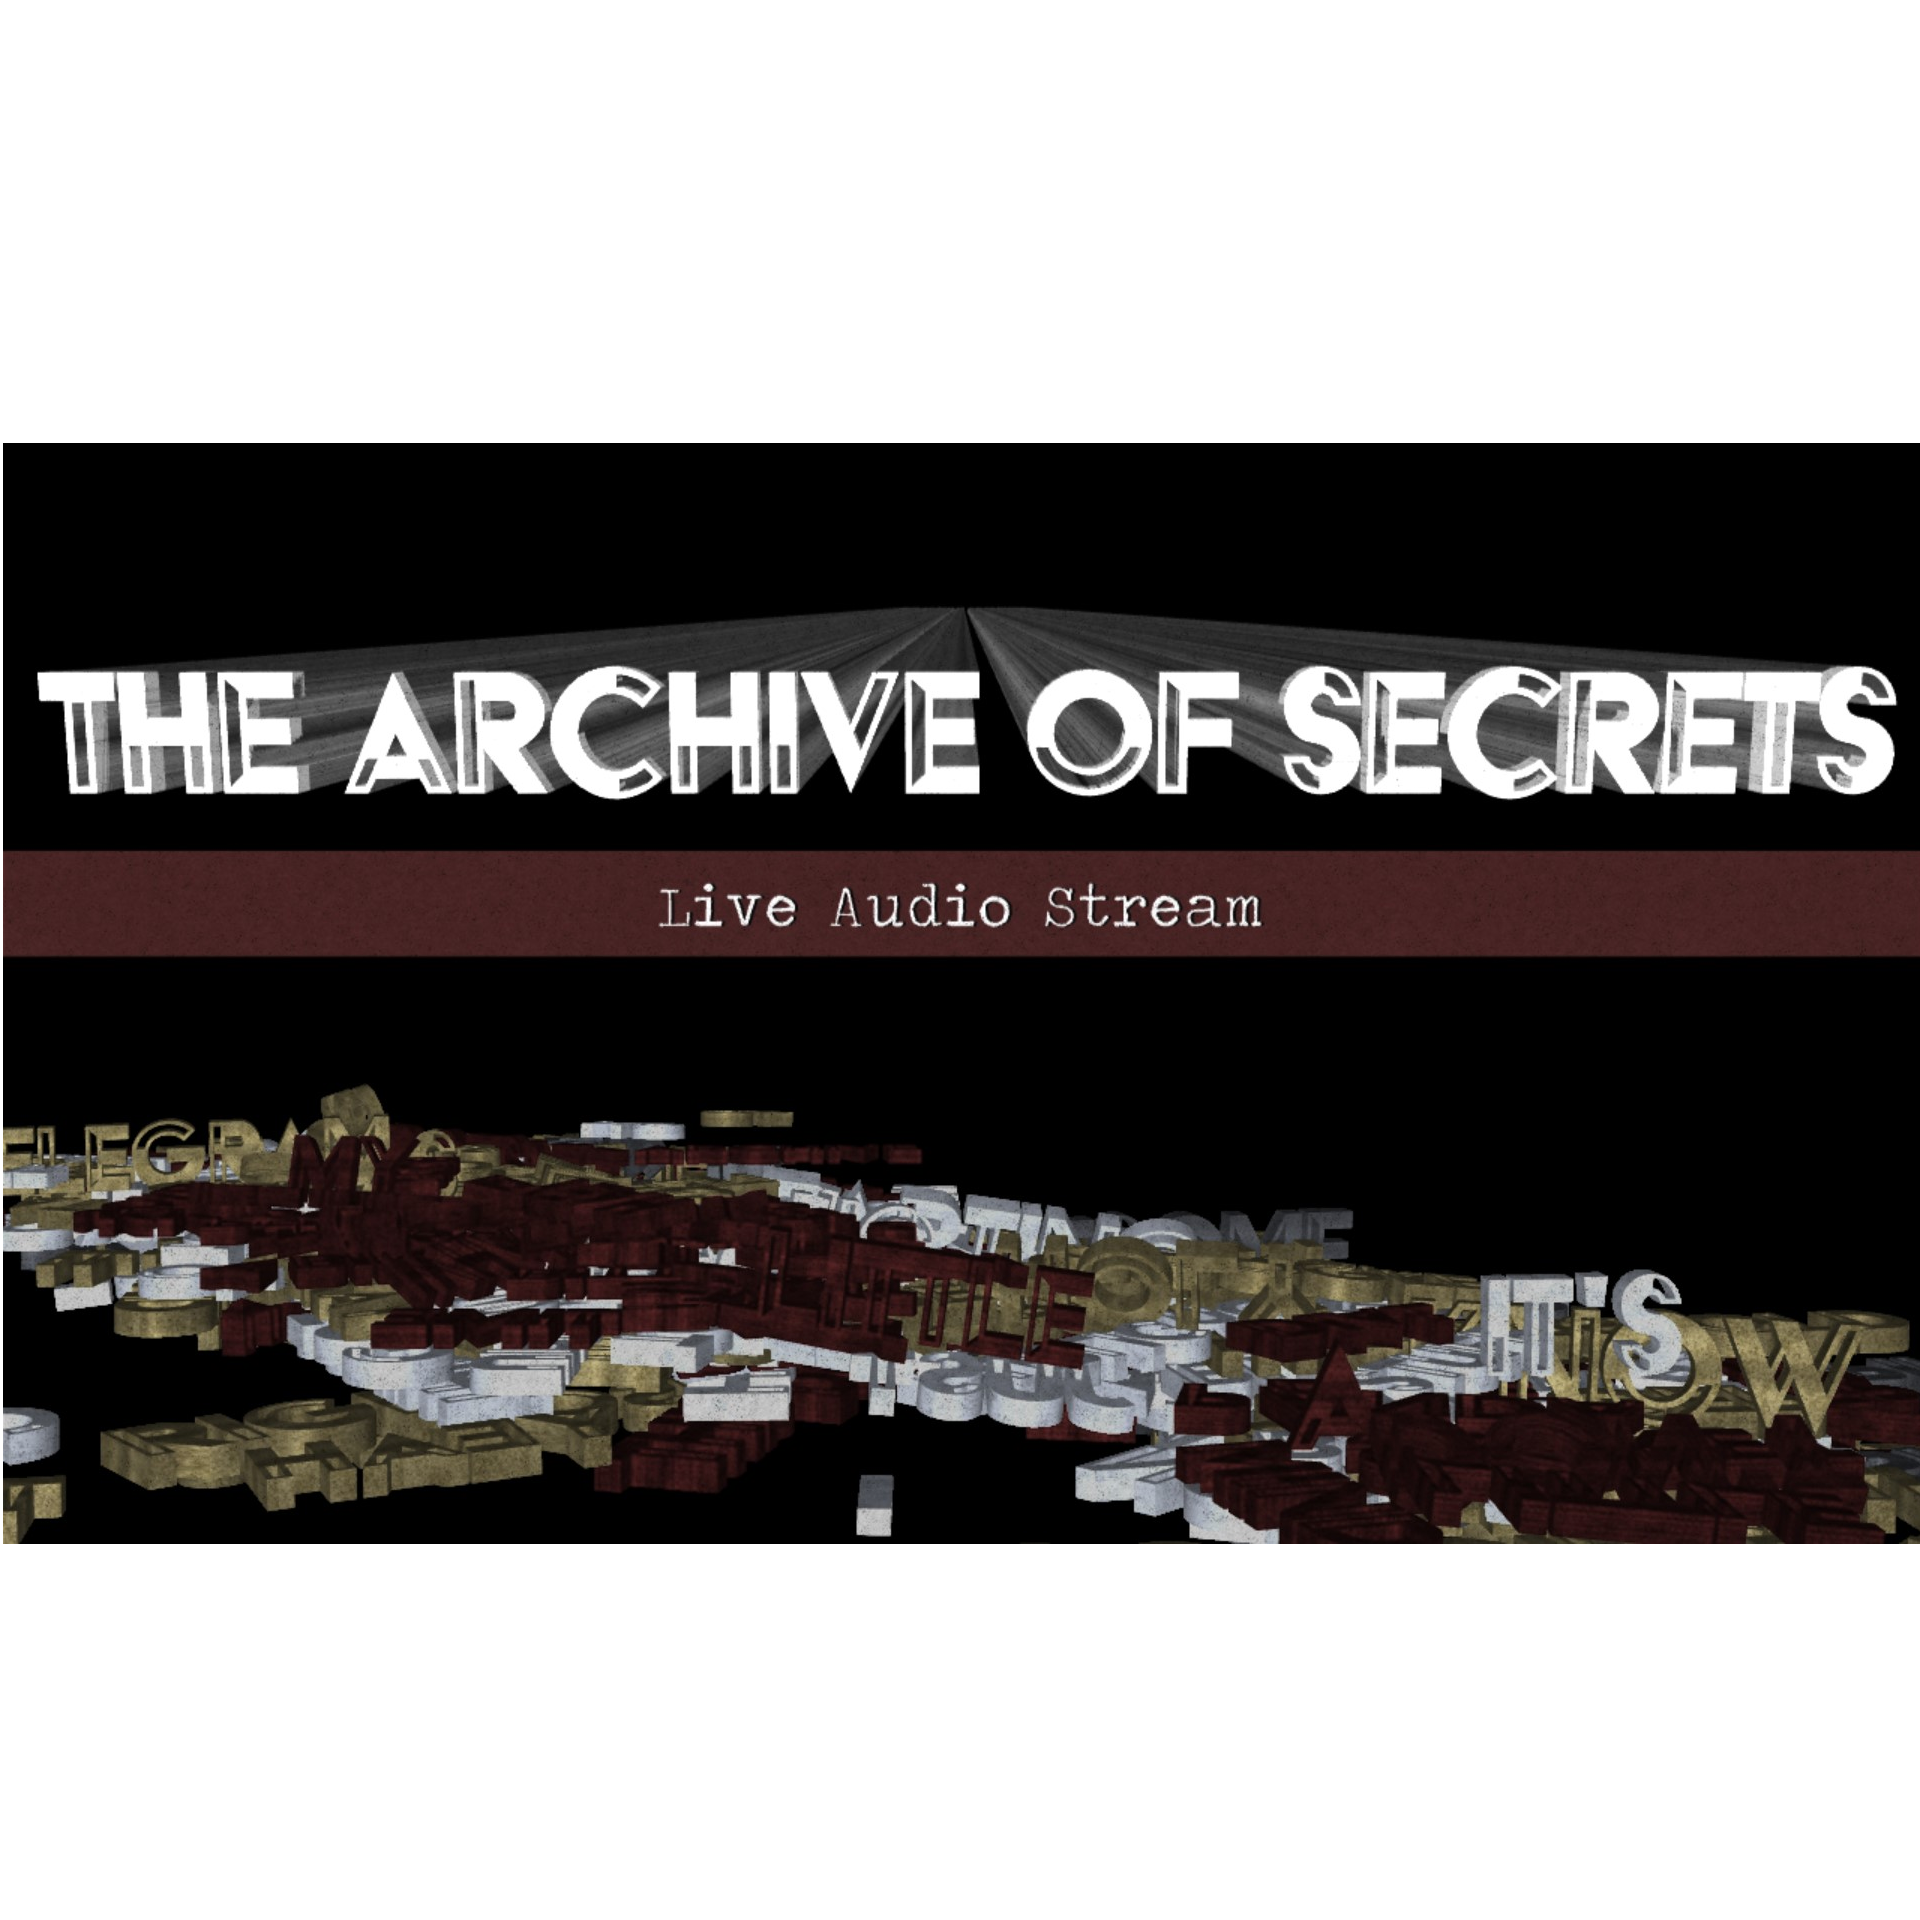 The Archive of Secrets